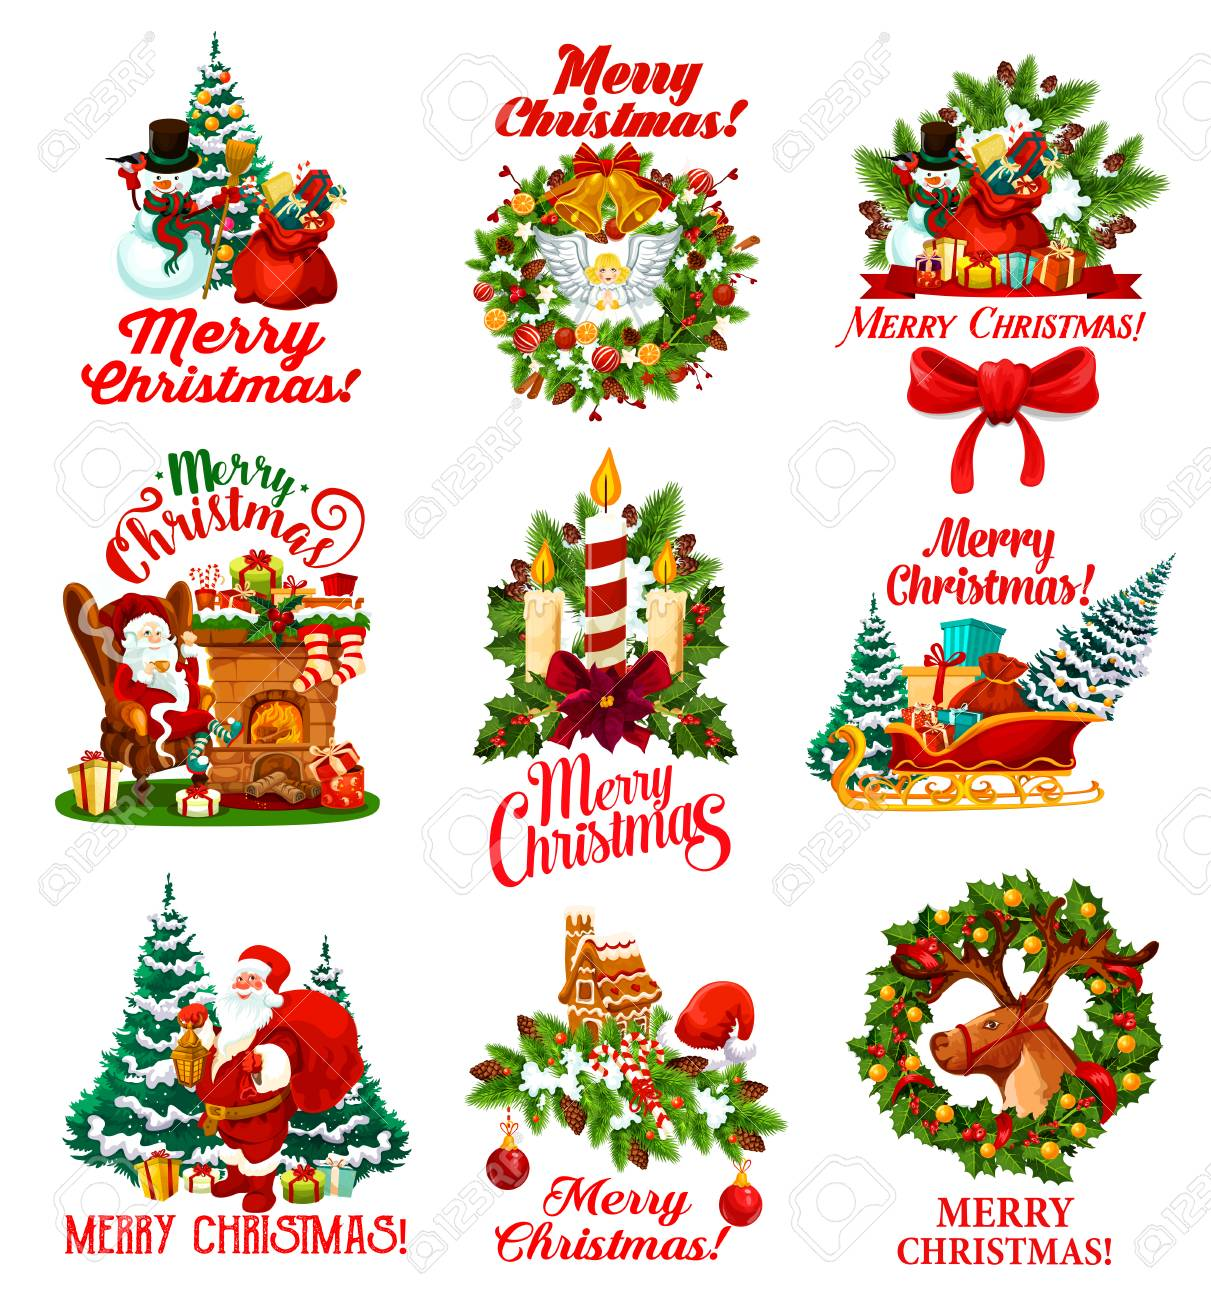 Merry Christmas Greeting Wishes Icons Of Winter Holidays Symbols Royalty Free Cliparts Vectors And Stock Illustration Image 108998256